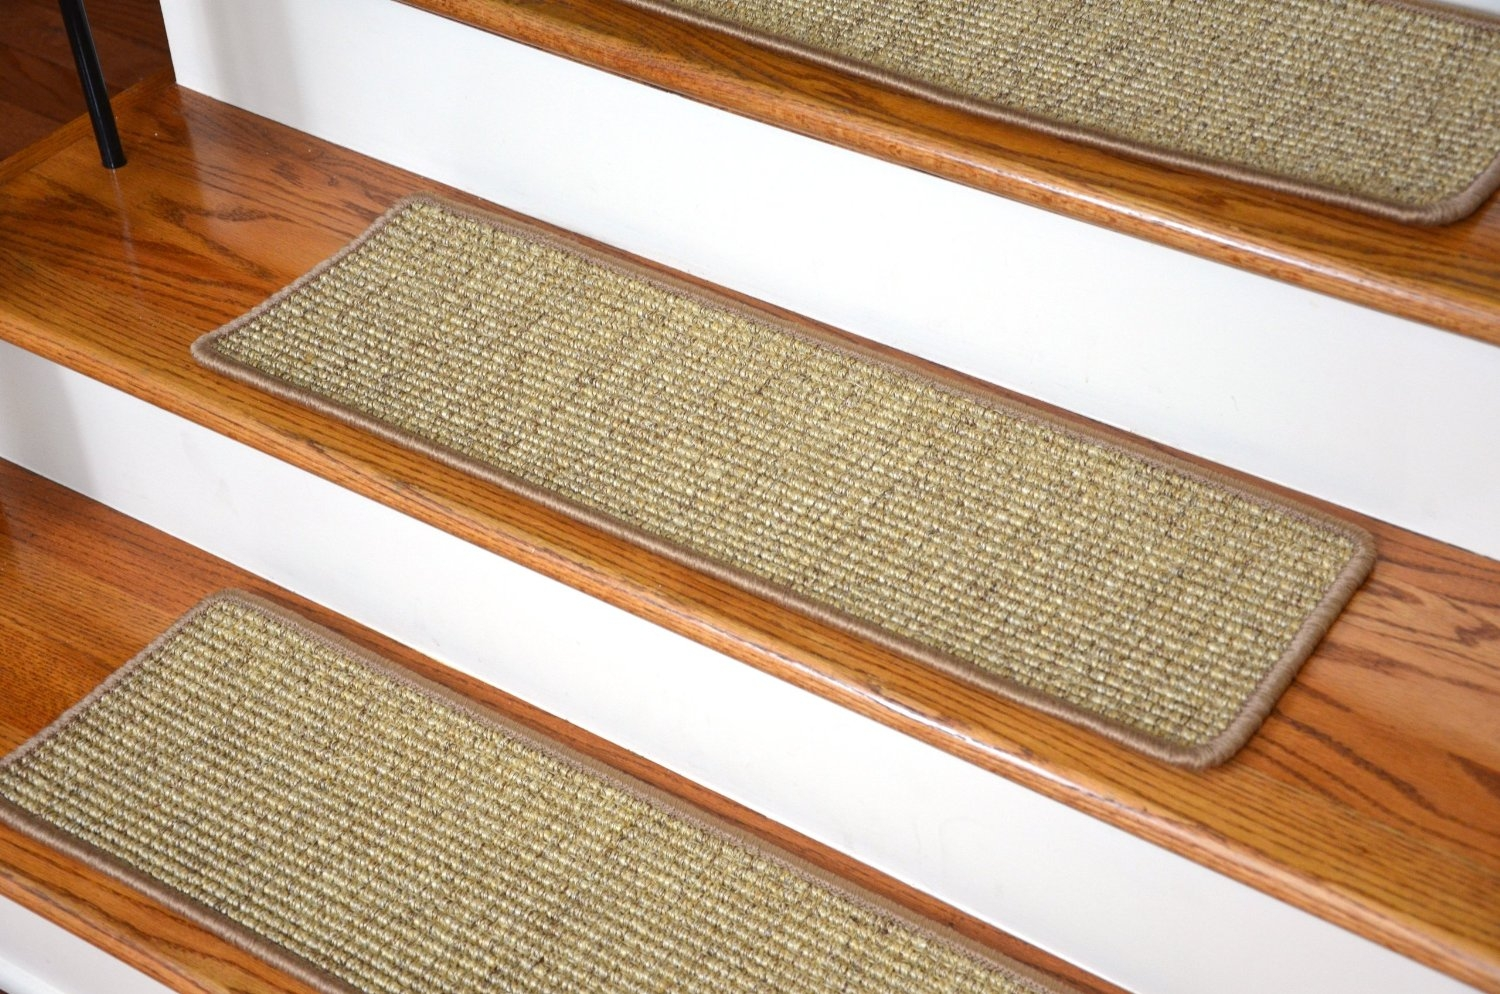 Easy Installing Carpet Stair Treads Stair Design Ideas Pertaining To Stair Tread Carpet Pads (Image 5 of 15)